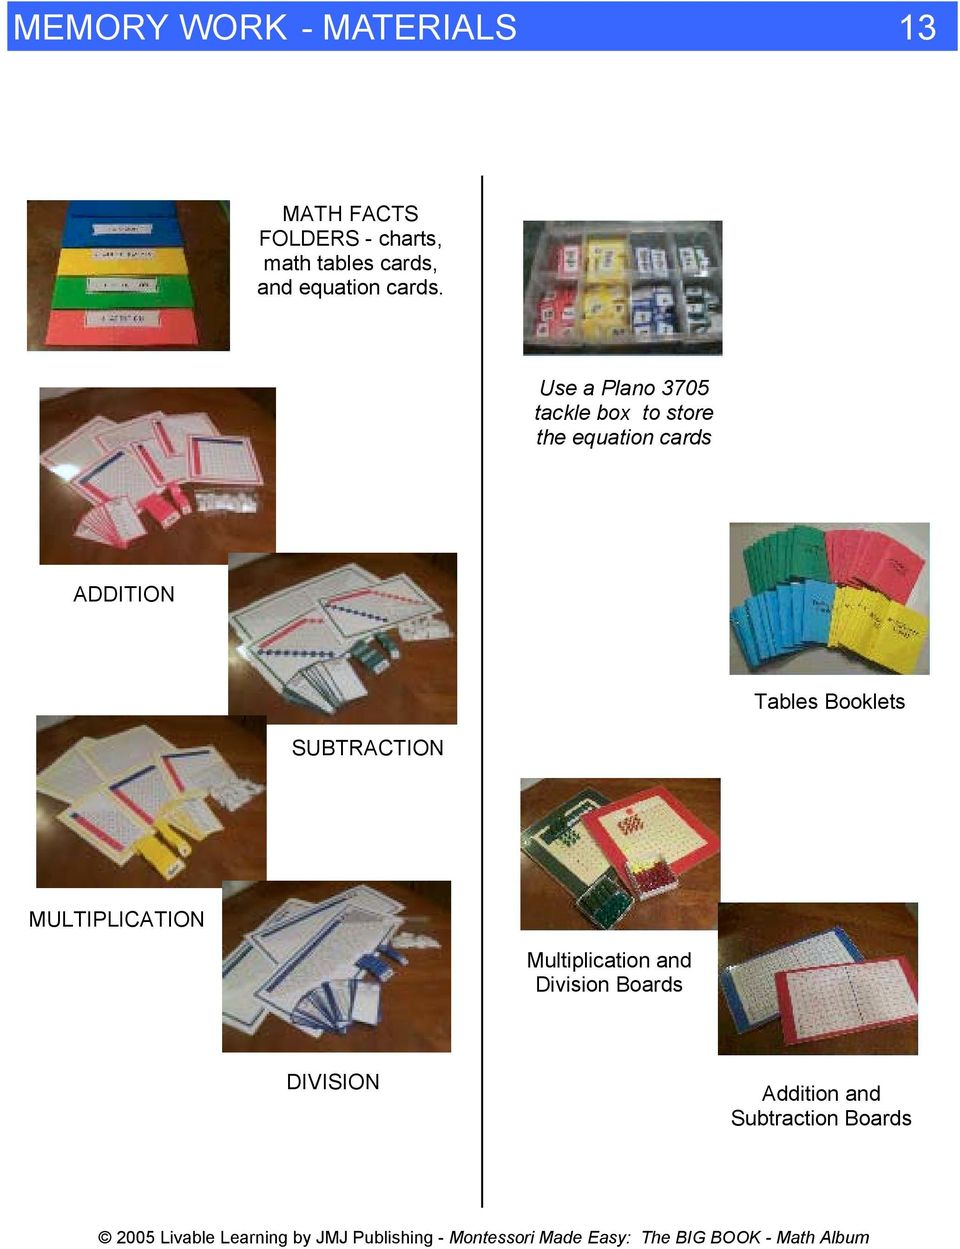 Use a Plano tackle box to store the equation cards ADDITION SUBTRACTION Tables Booklets